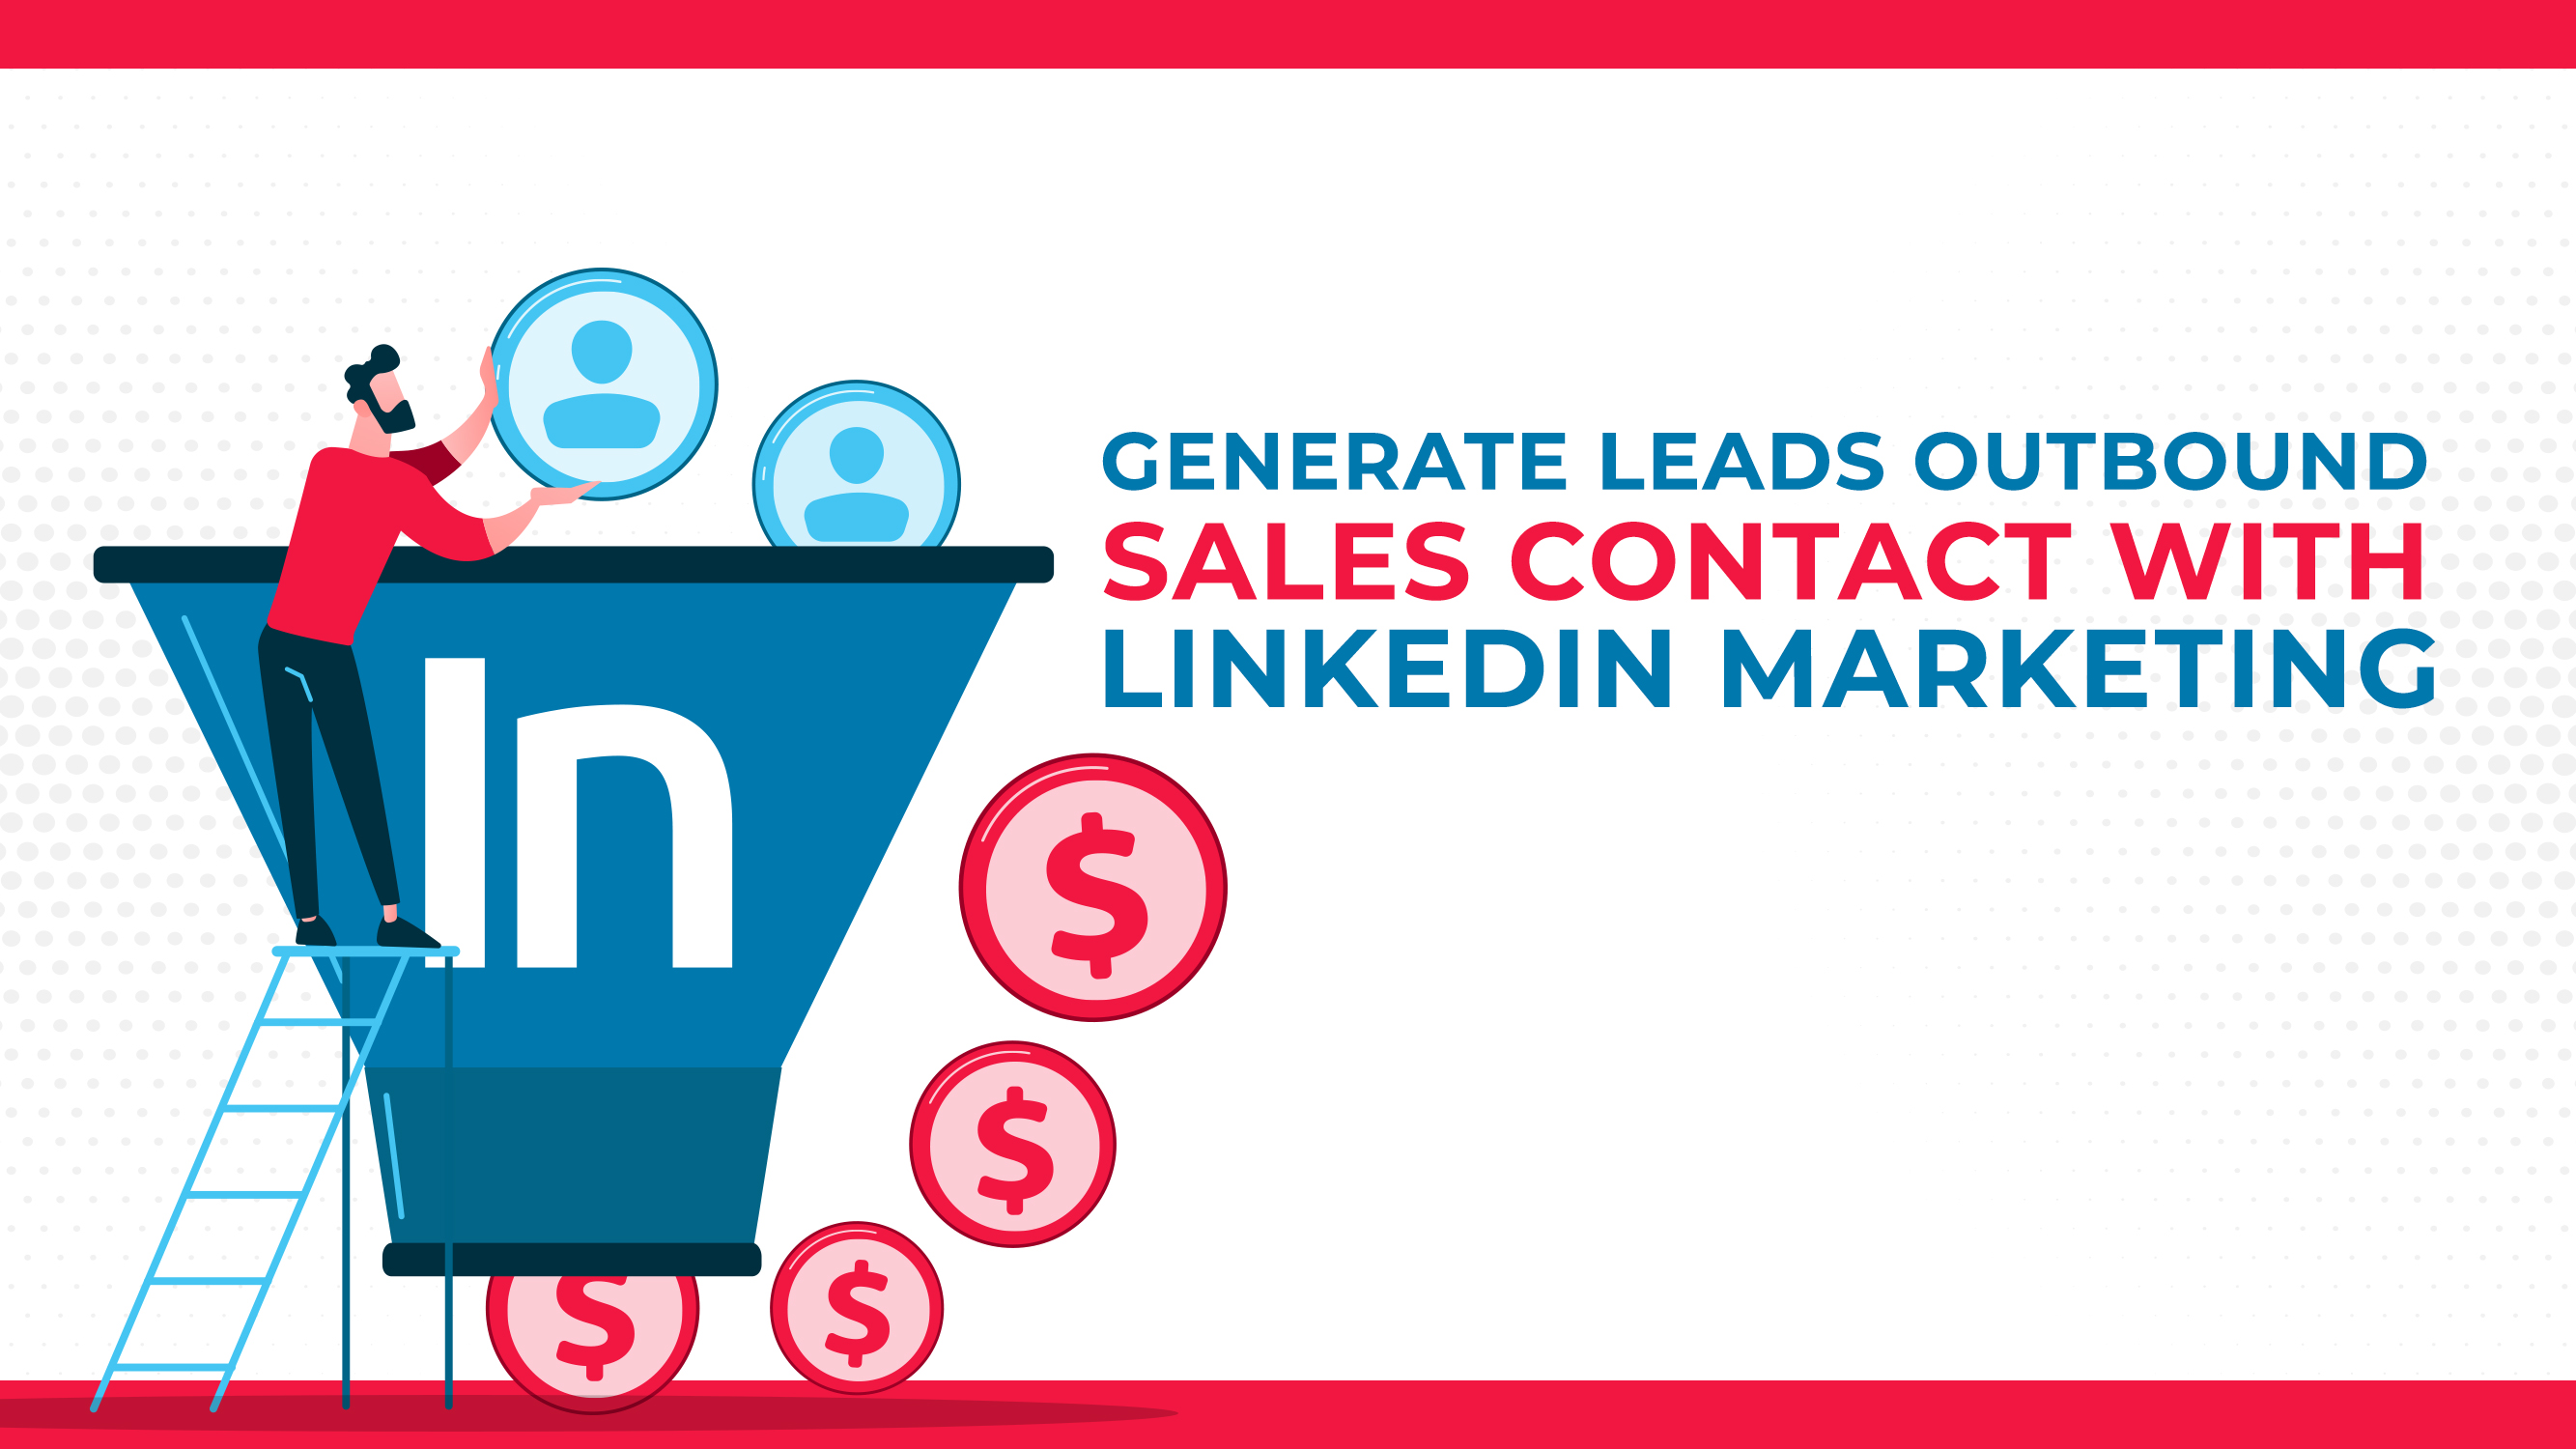 Gerar Leads Outbound Sales Contato com o LinkedIn Marketing